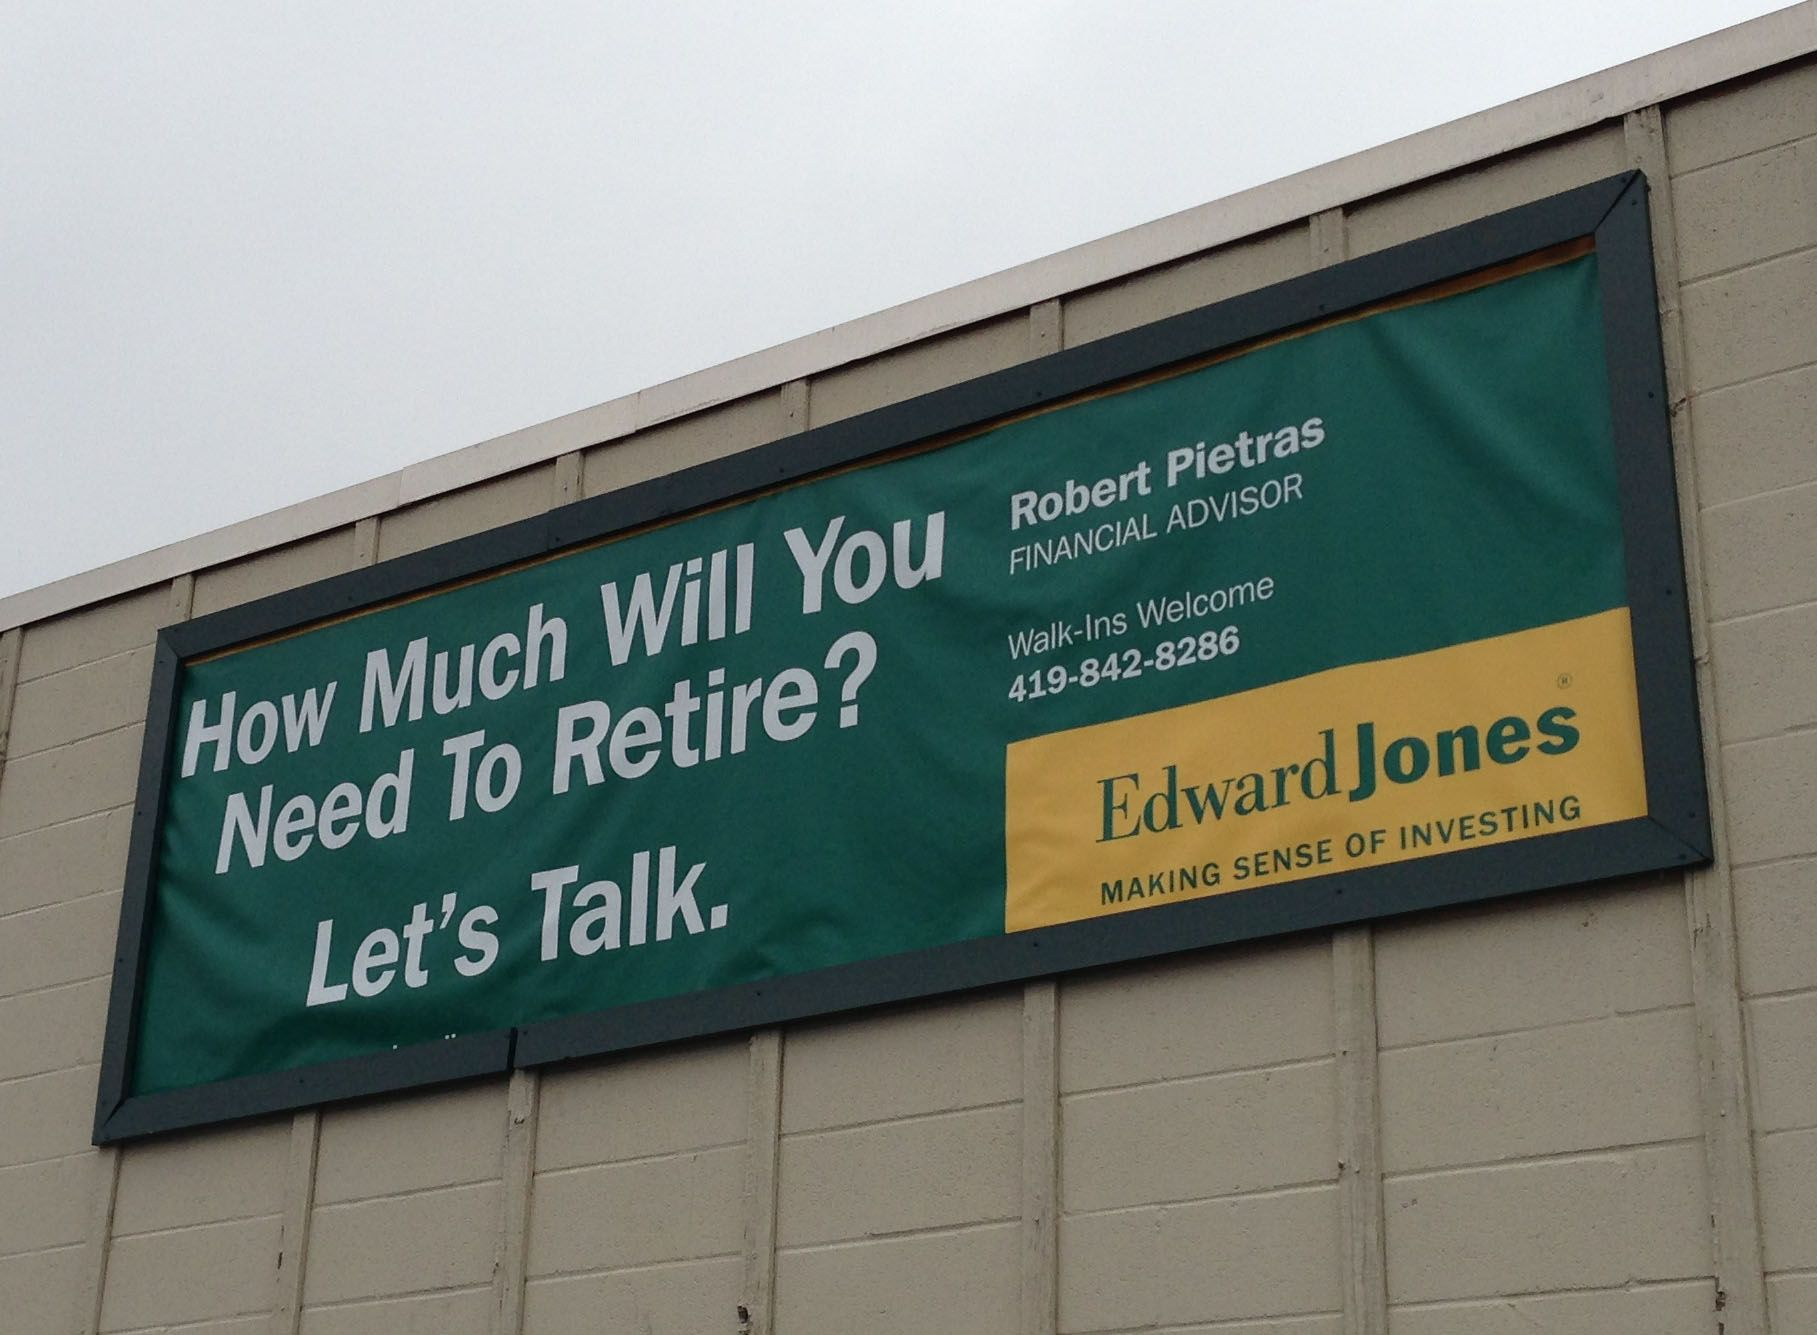 Digitally Printed Location Site Banner For Edward Jones Financial Advisor Rob Pietras Who Is Located At 5201 Monroe Street This Was Designed To